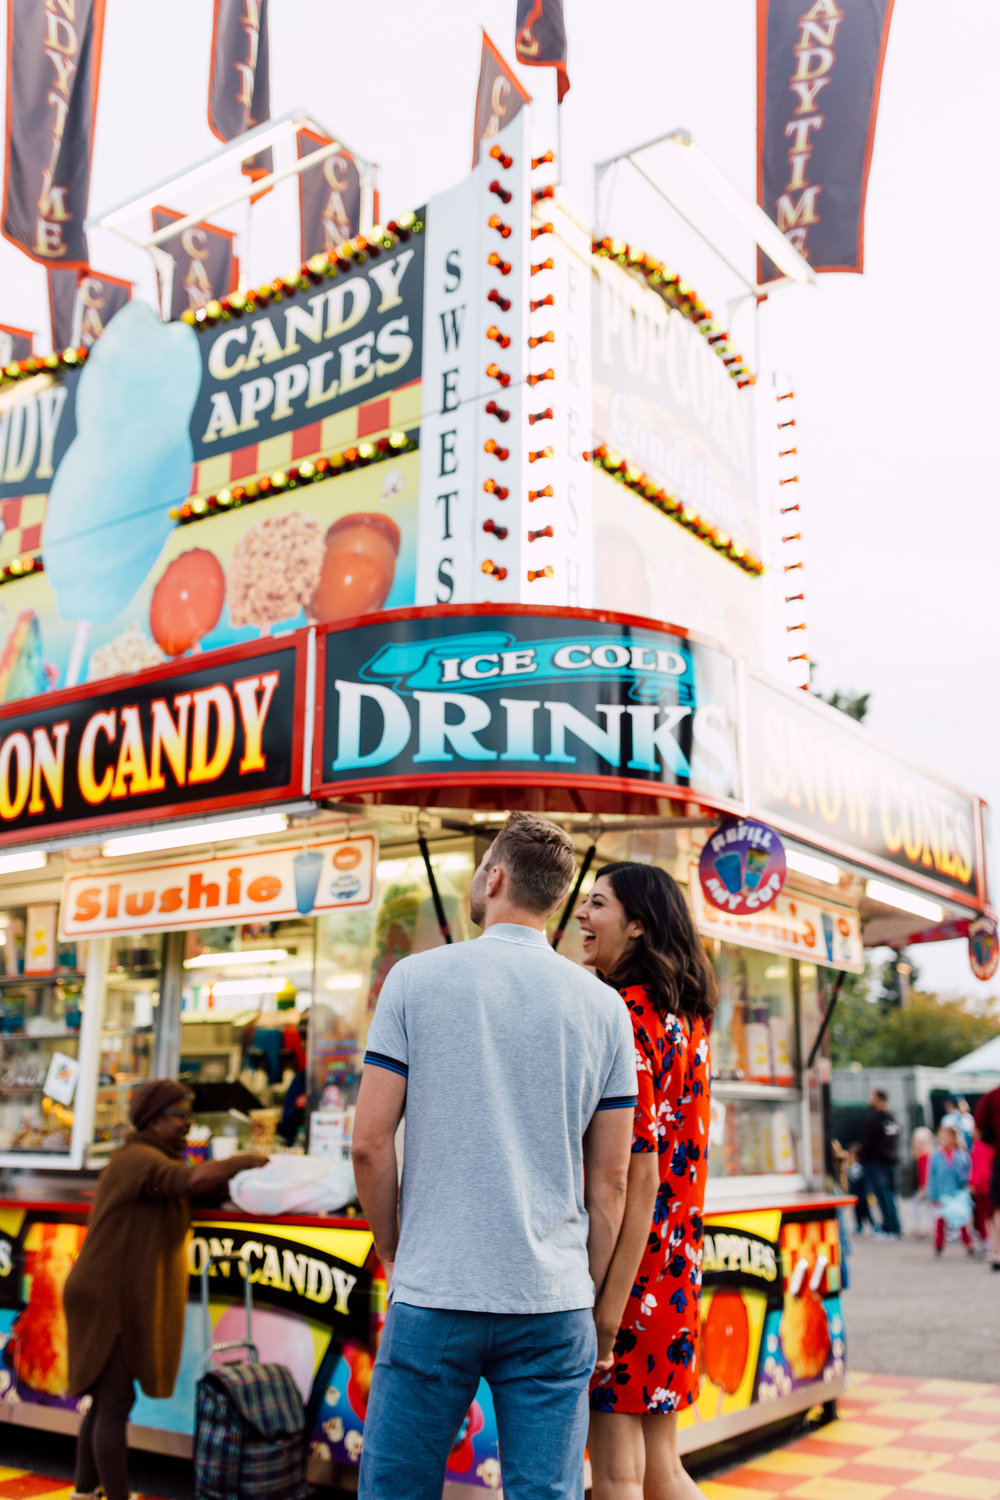 Engagement_Photography_Carnival_Fair-youthebestphotos-2.jpg